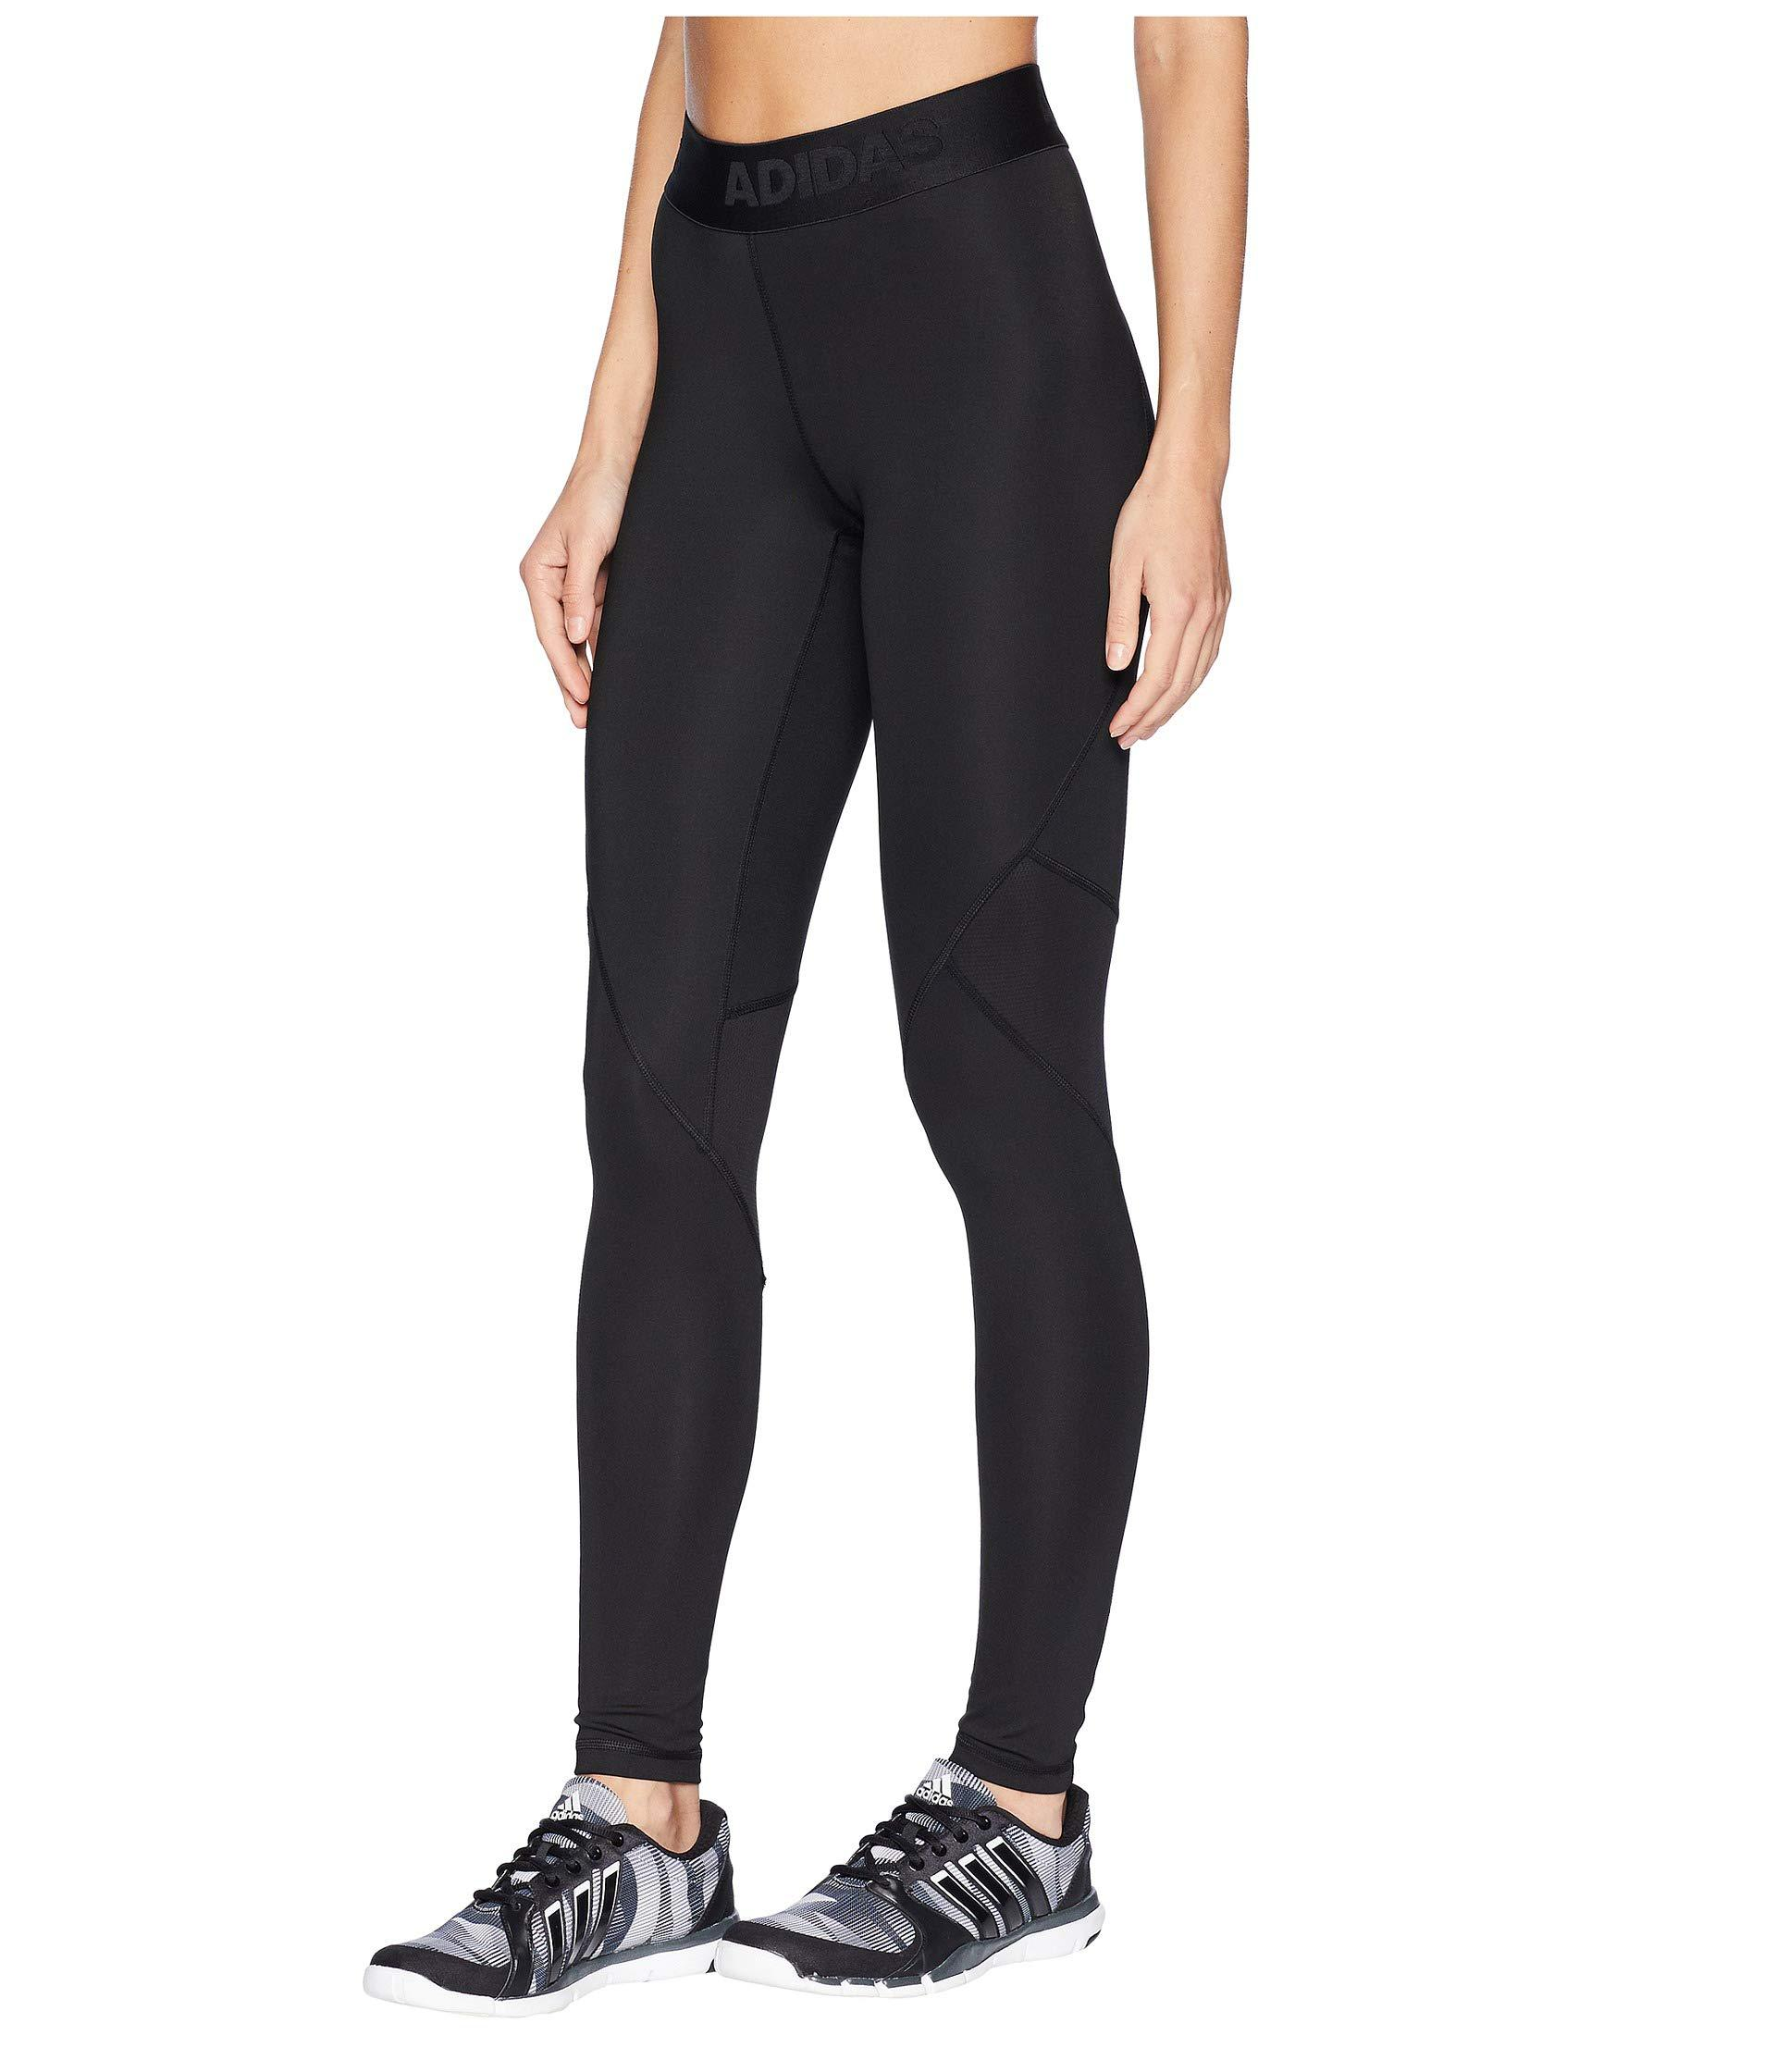 2d8819c29e1 adidas Alphaskin Sport Long Tights (dark Grey Heather black) Women s  Workout in Black - Lyst